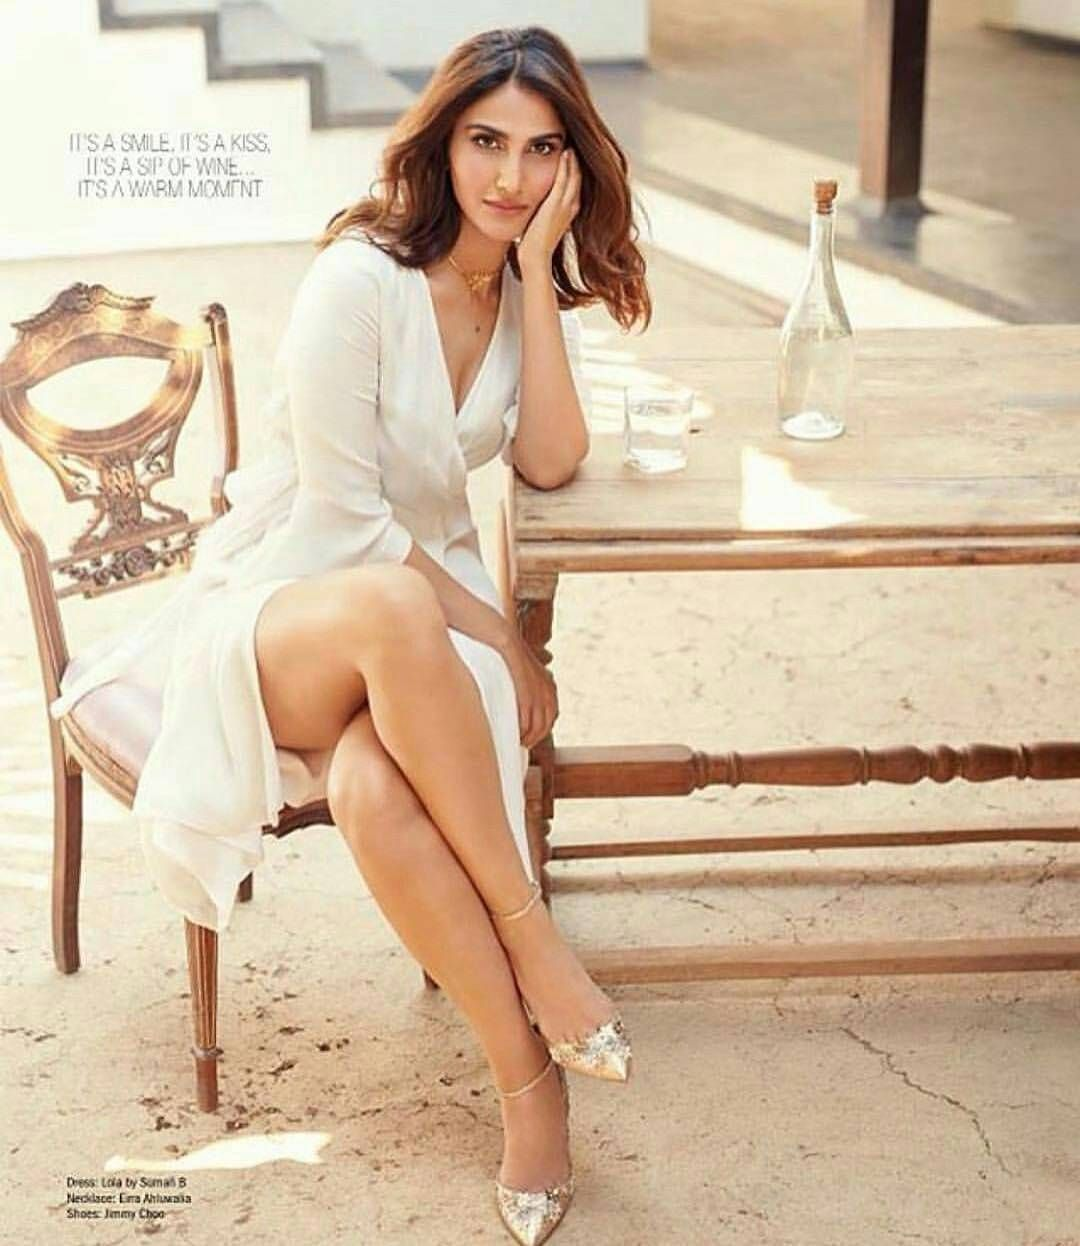 Sexy legs! Vaani Kapoor looks extremely gorgeous in her recent photoshoot.  @filmywave #